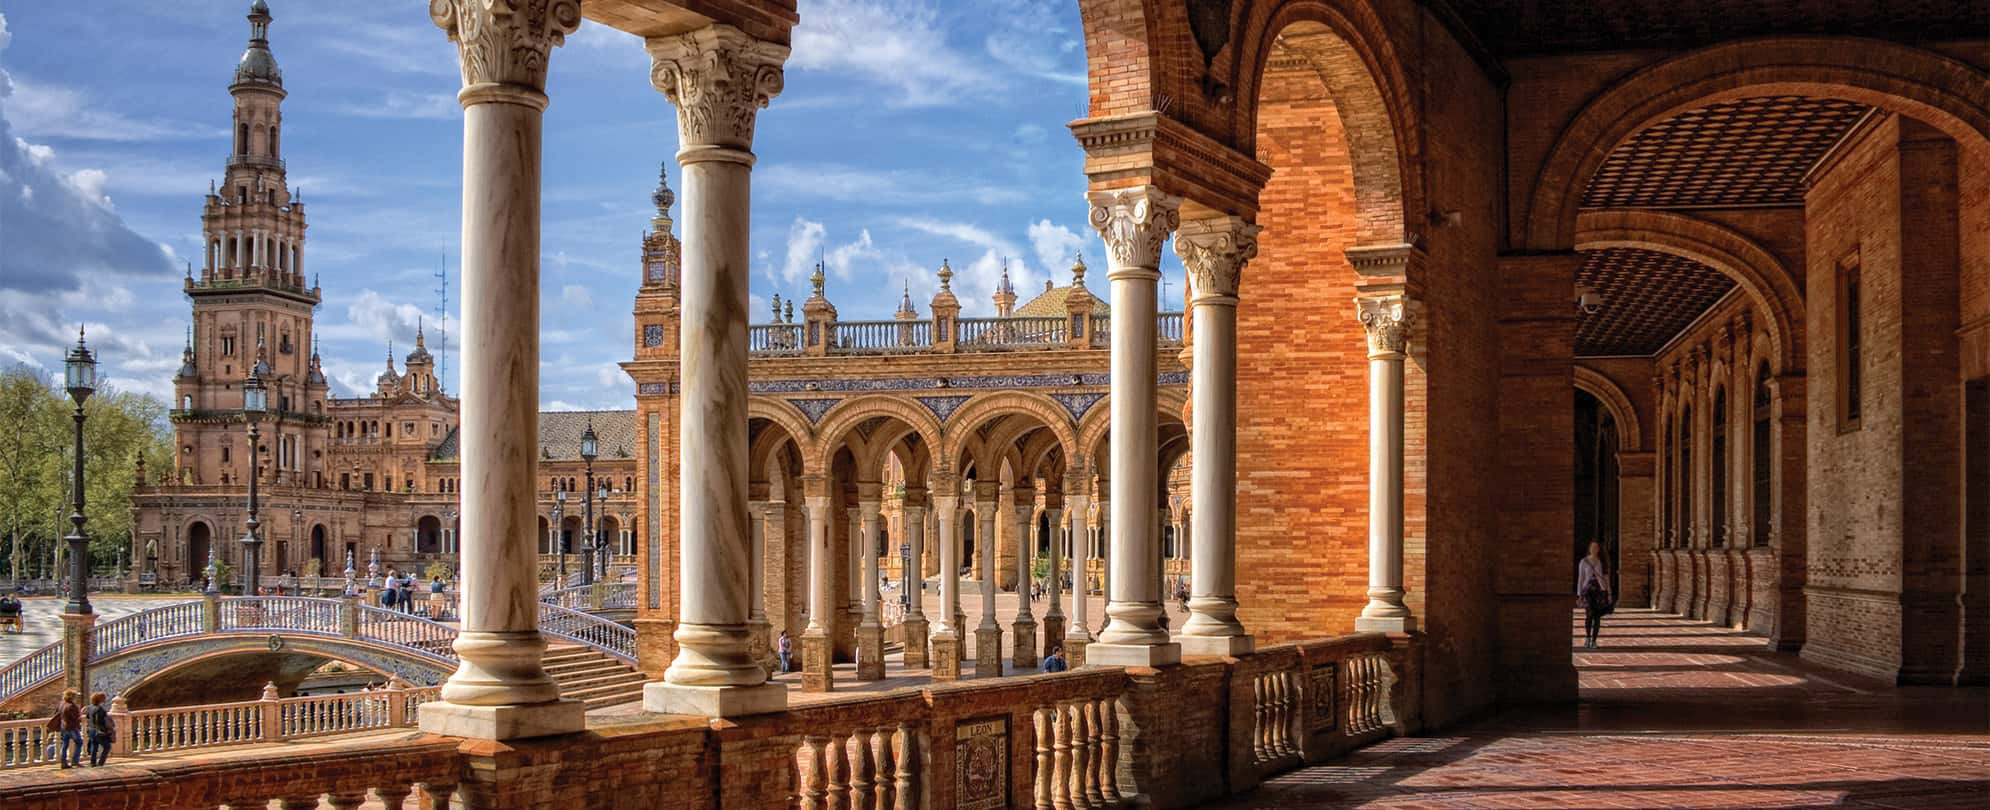 Marble columns, tall tower, and red stone architecture at the Plaza De Espana in Spain